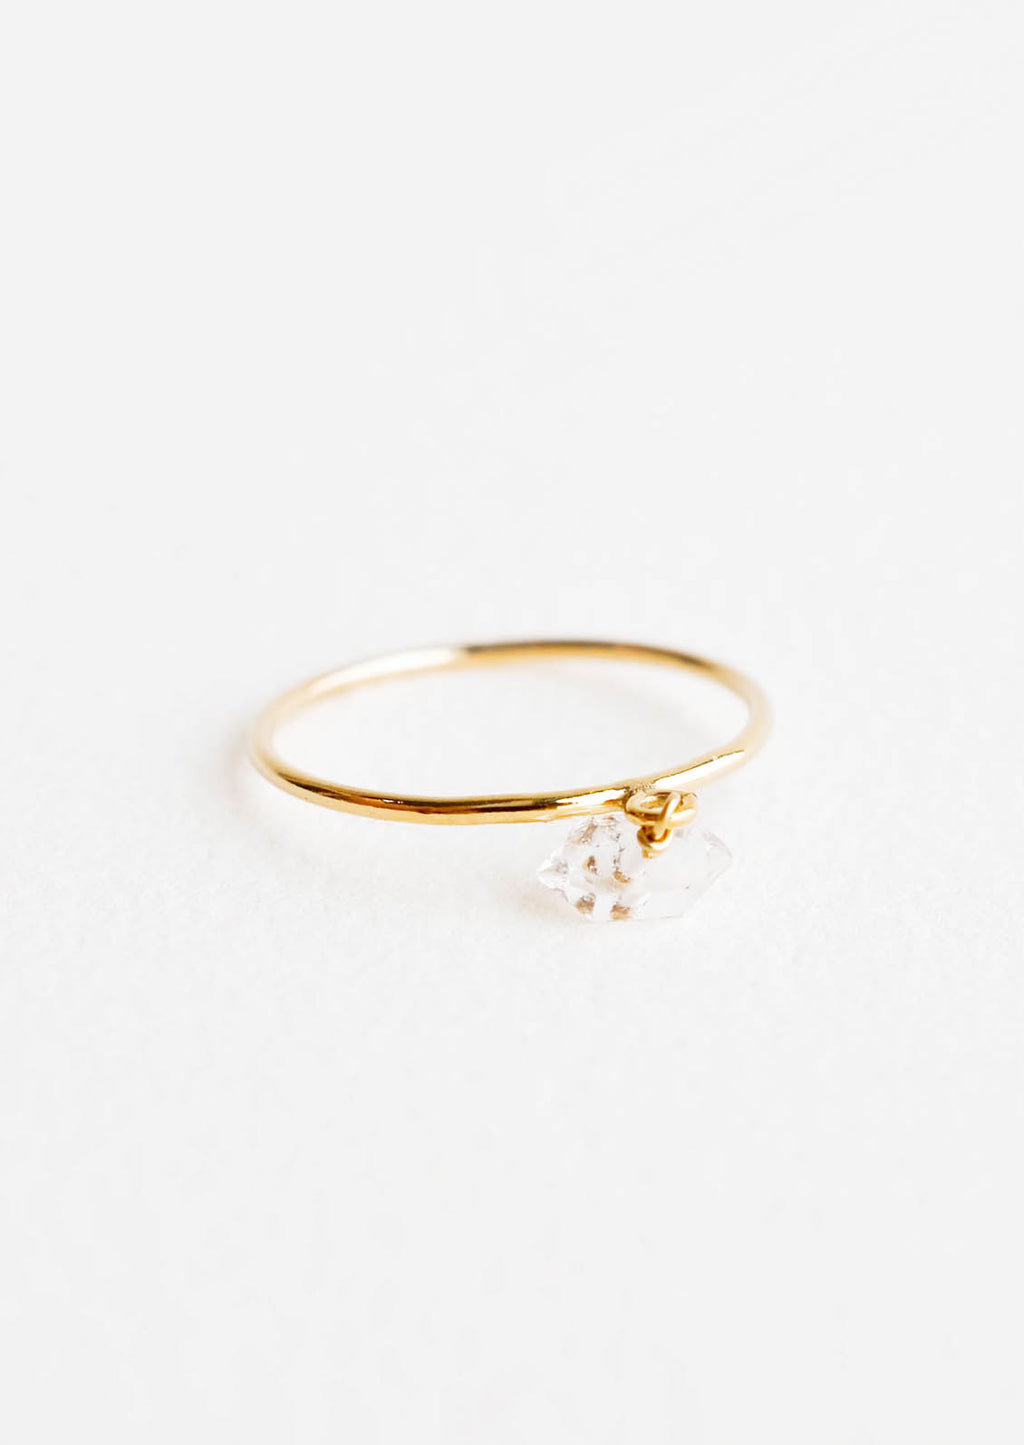 1: Slim yellow gold ring with a dangling white faceted stone.